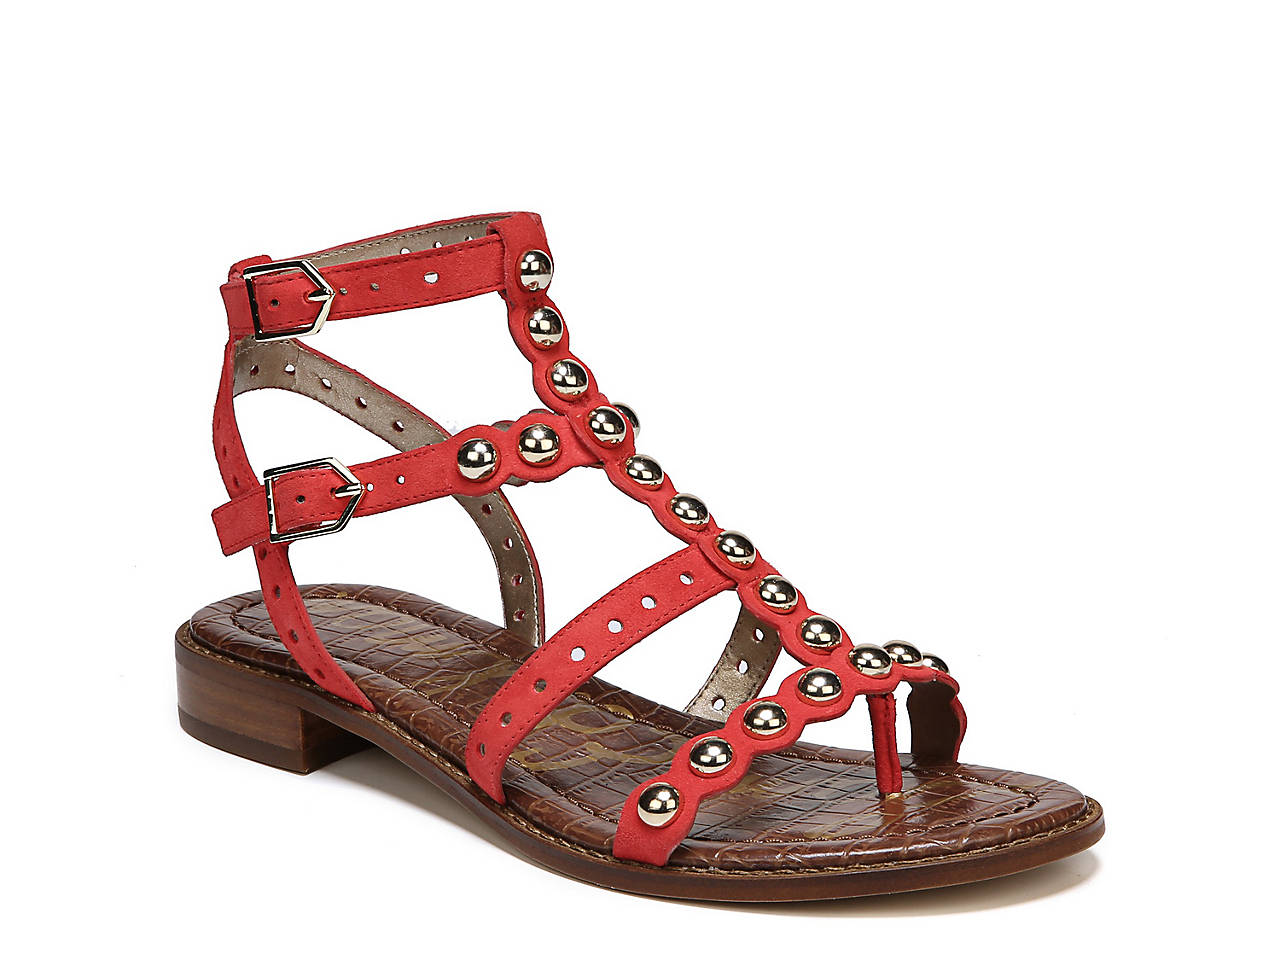 8d34ff704857 Sam Edelman Elisa Gladiator Sandal Women s Shoes